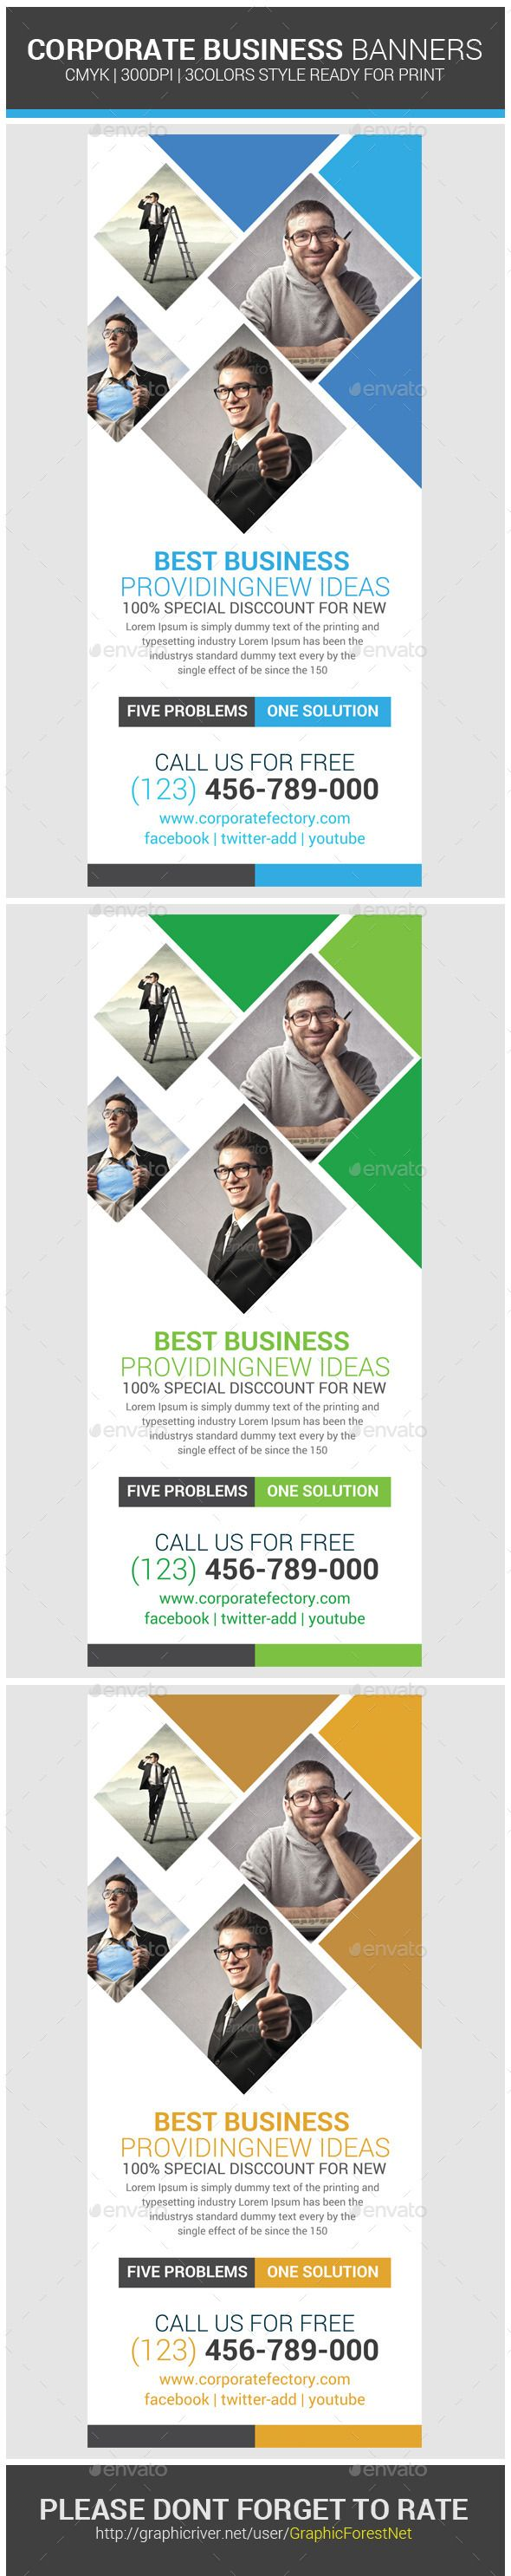 Business Rollup Banner Psd Template | Pinterest | Cartelitos y ...